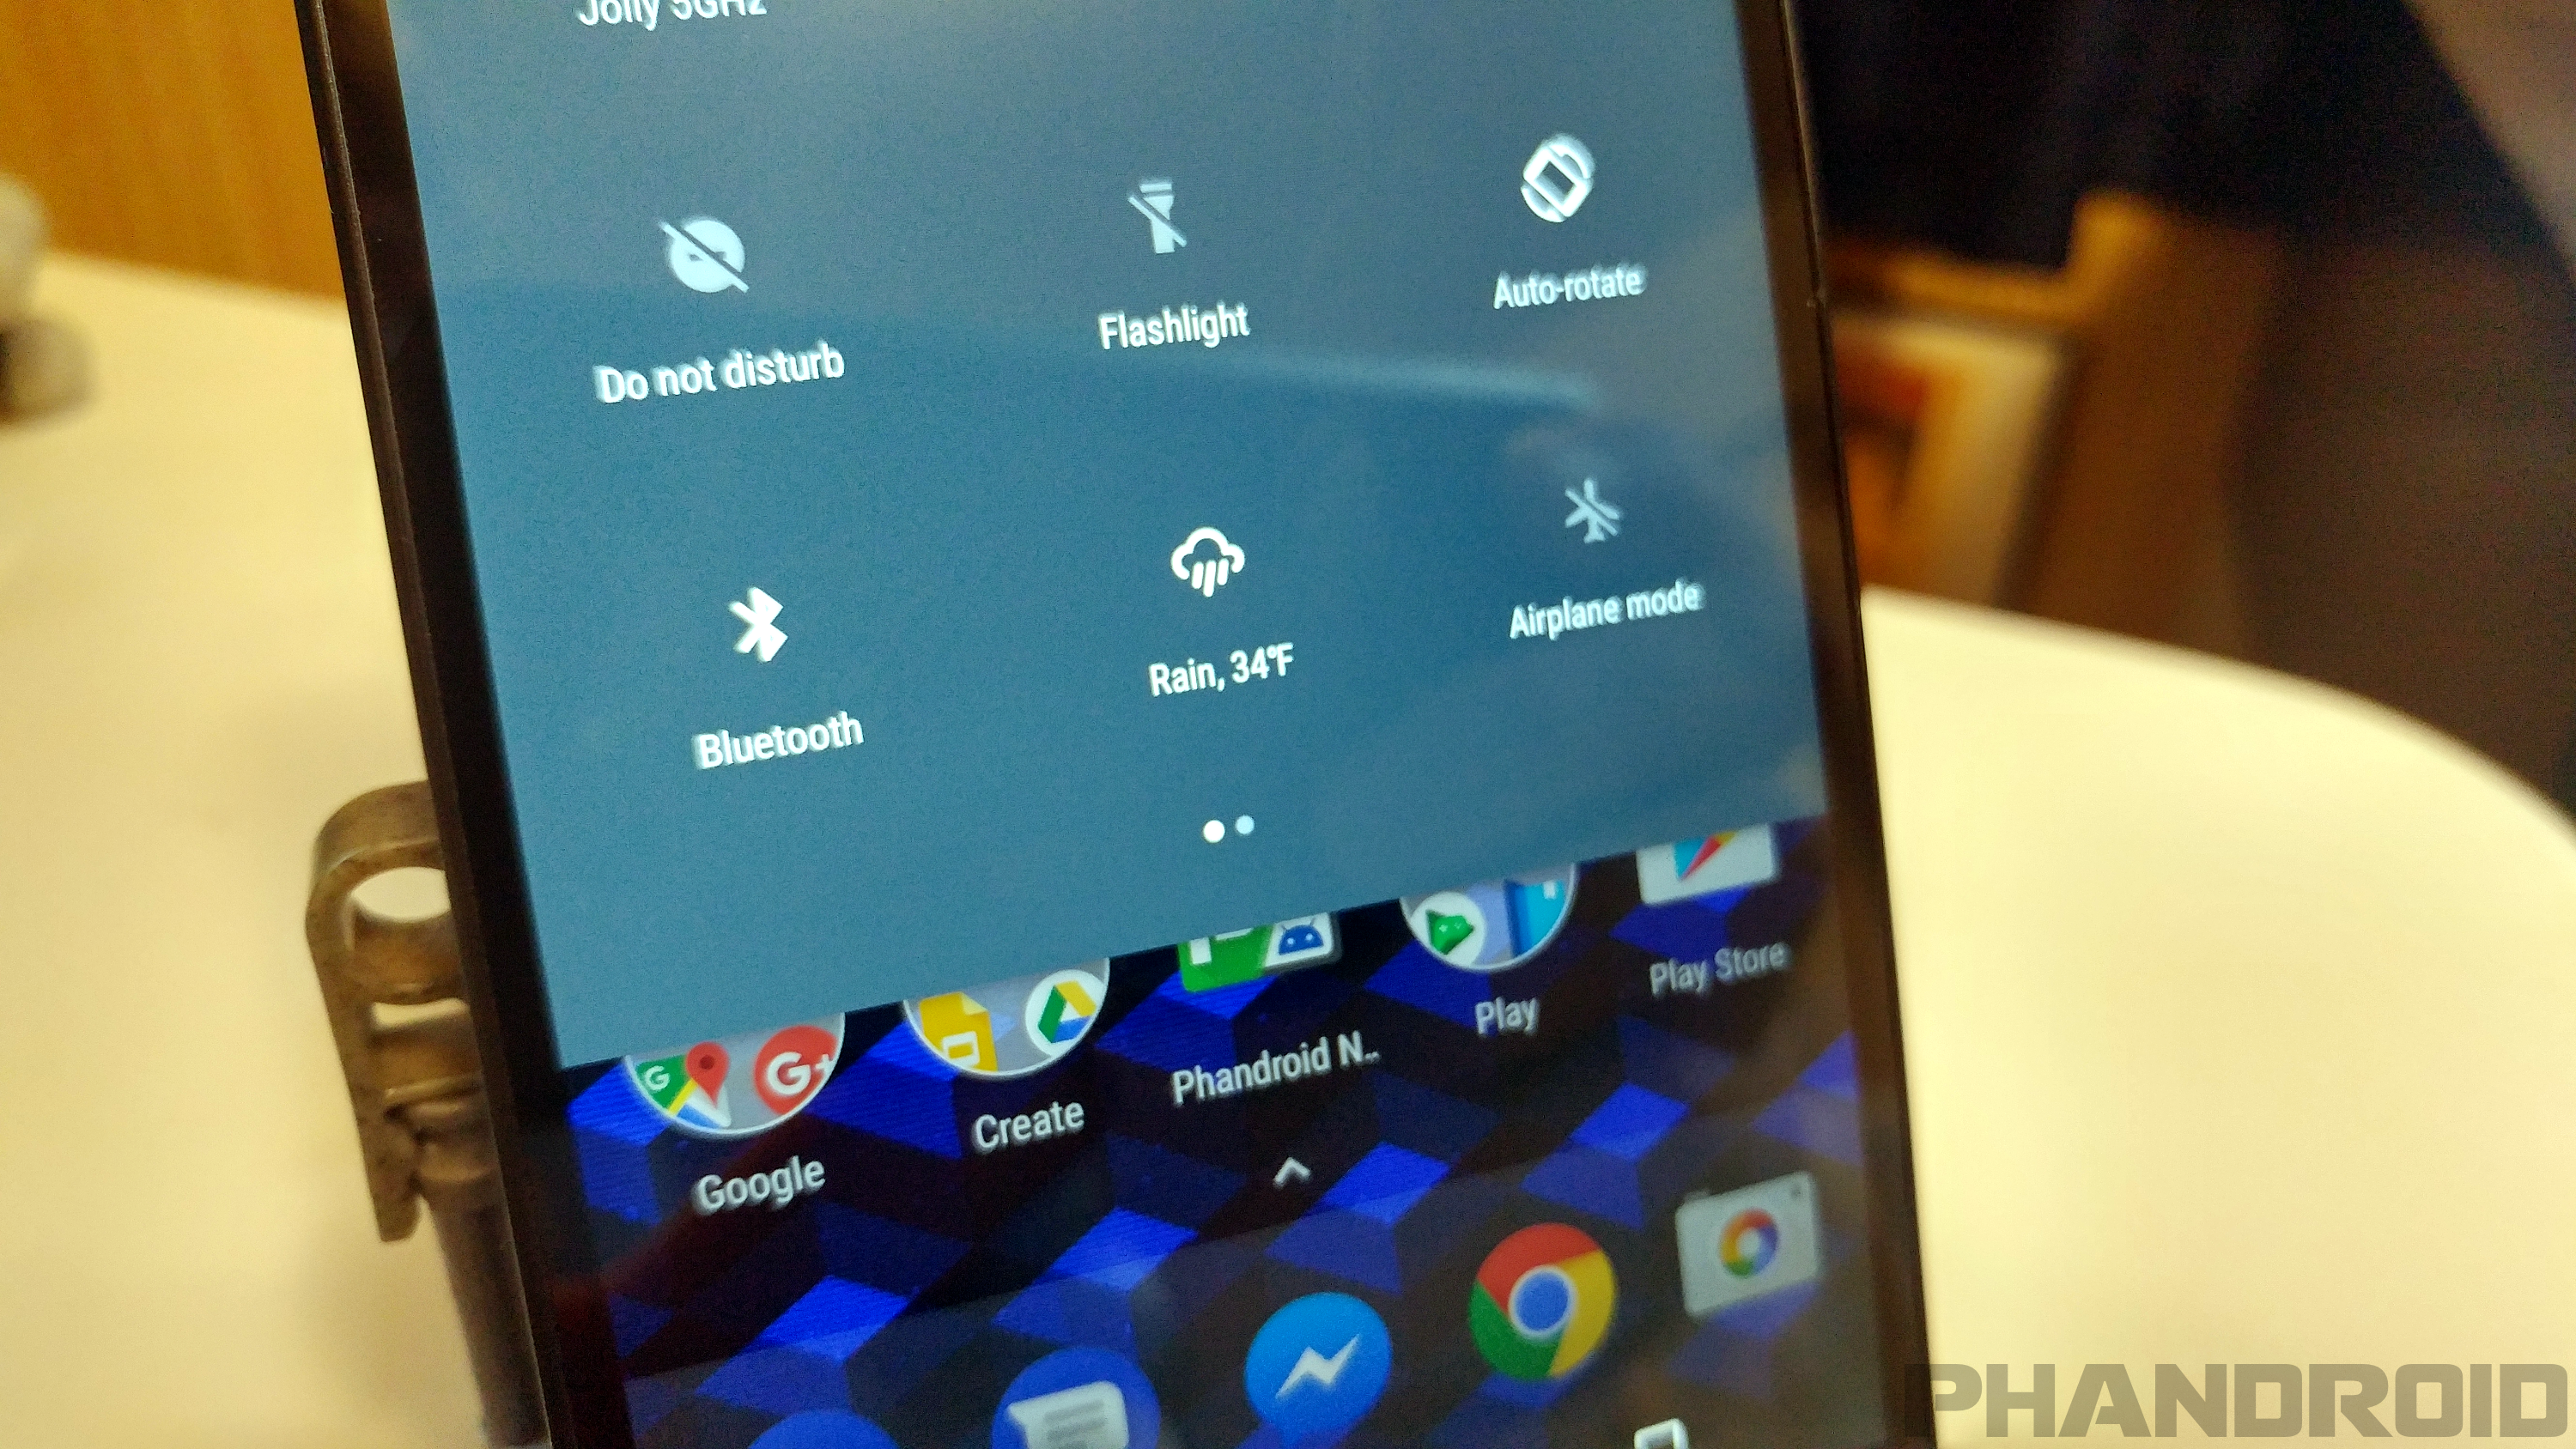 Camera Cool Tricks For Android Phones 8 cool tricks every android phone user should know one of the best new features you may not be aware is custom quick settings tiles area in notification shade